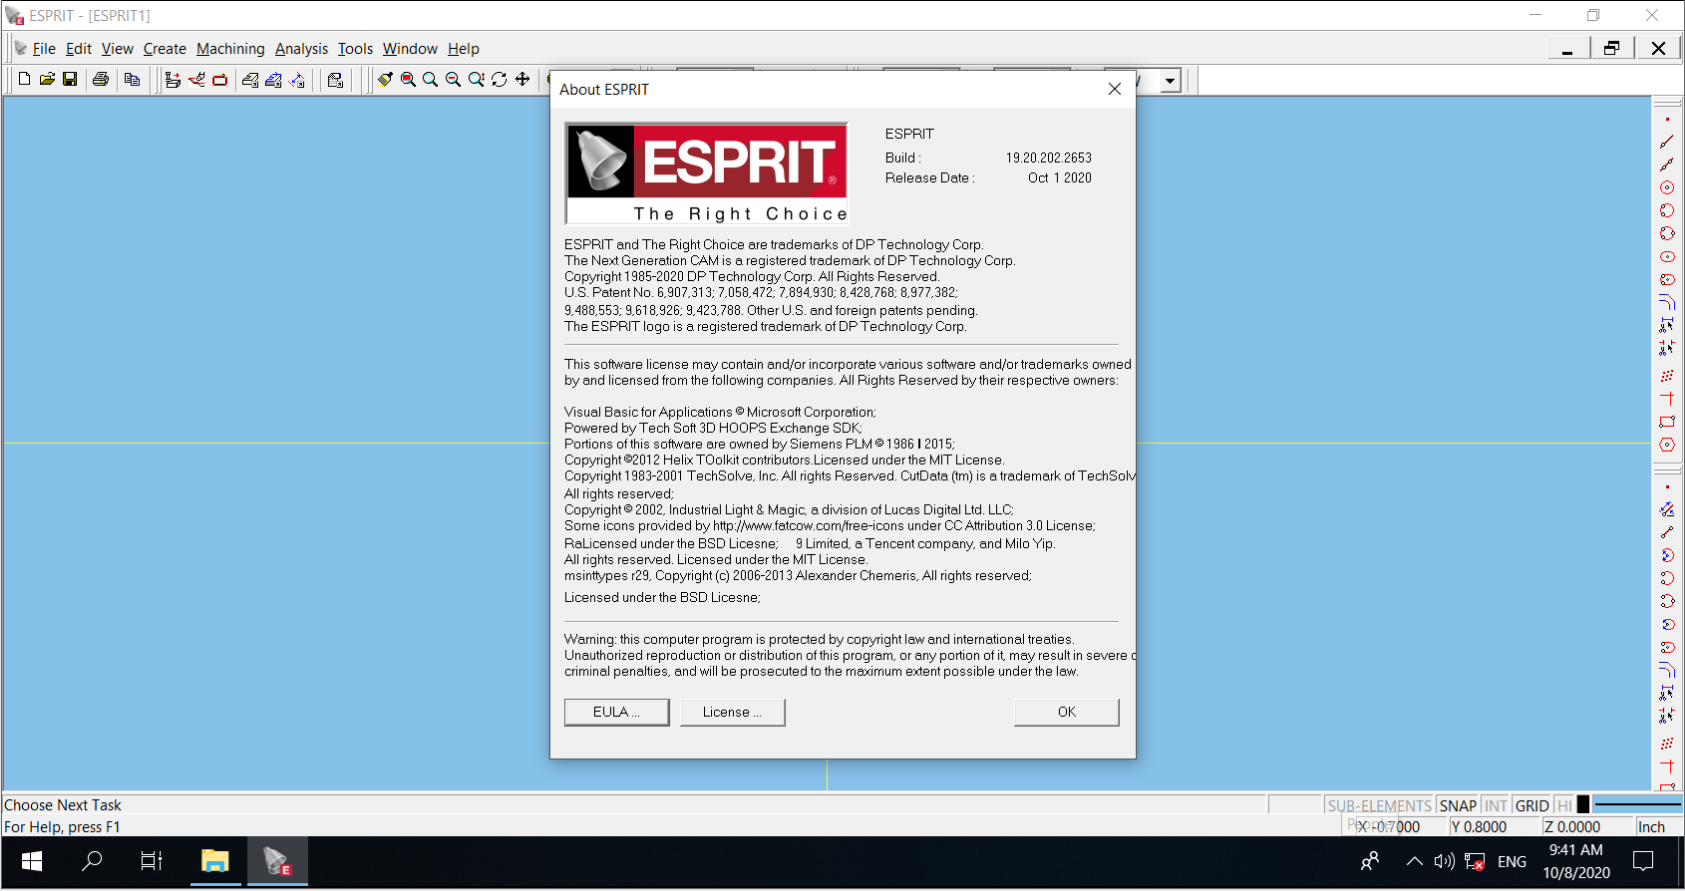 Working with ESPRIT 2020 R2 B19.20.202.2645 full license